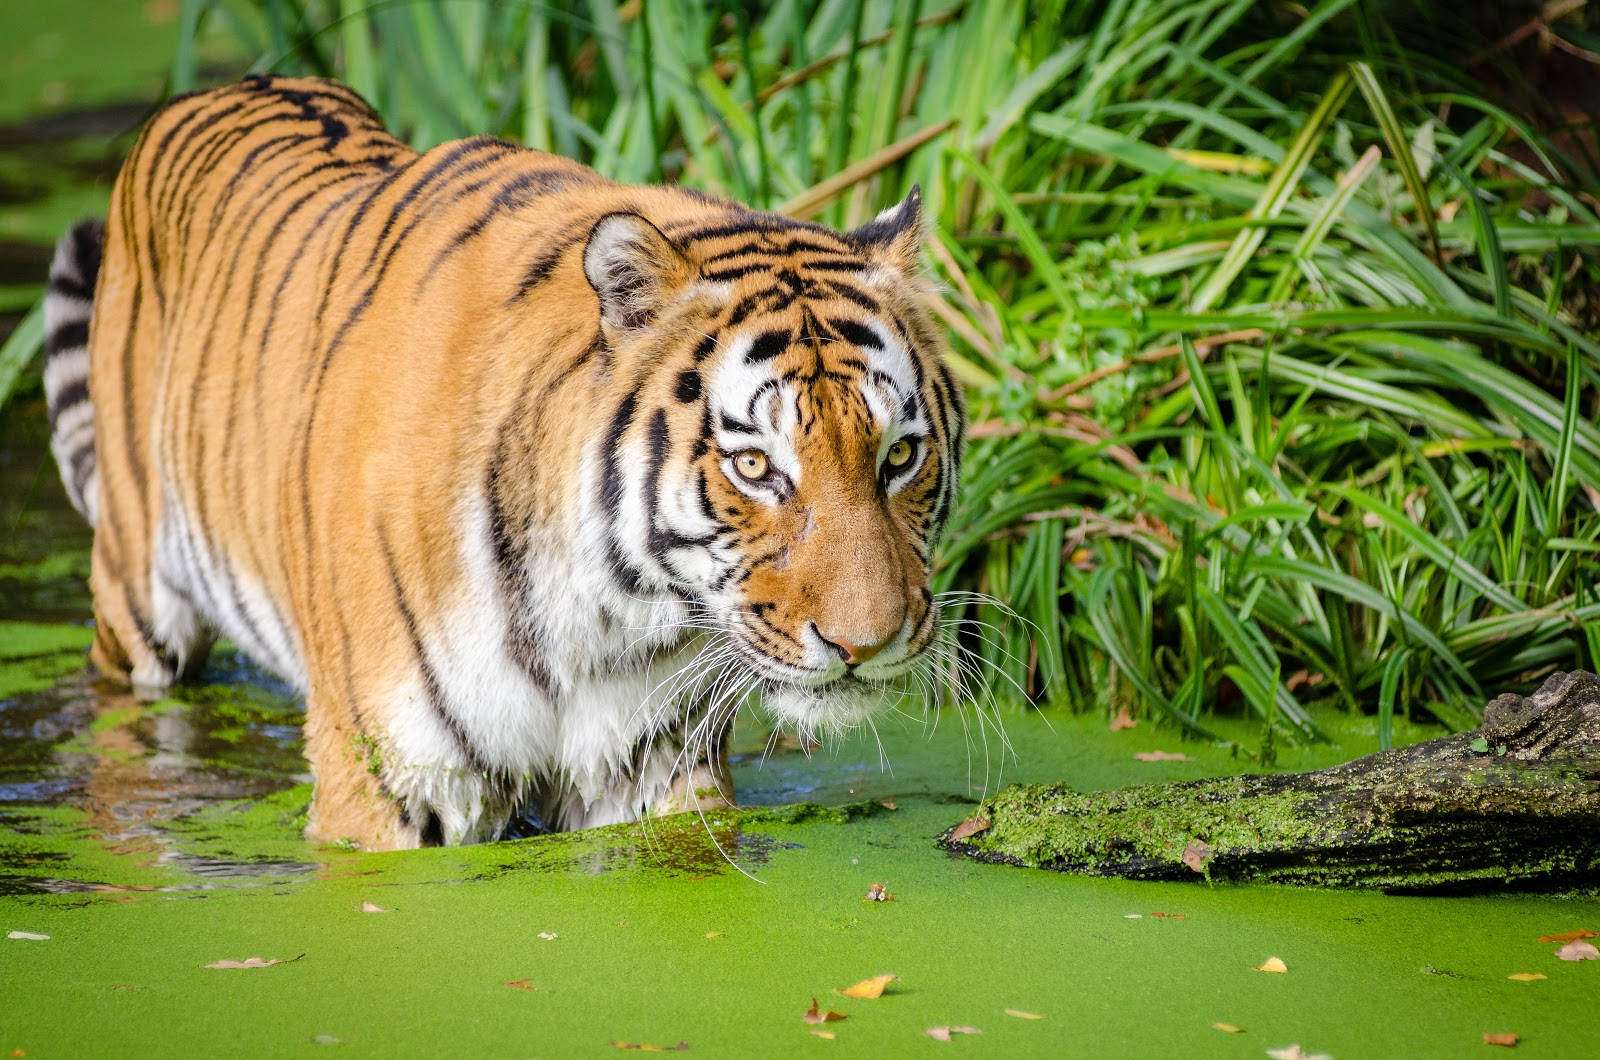 tiger-walking-on-pond-near-plants-pictures